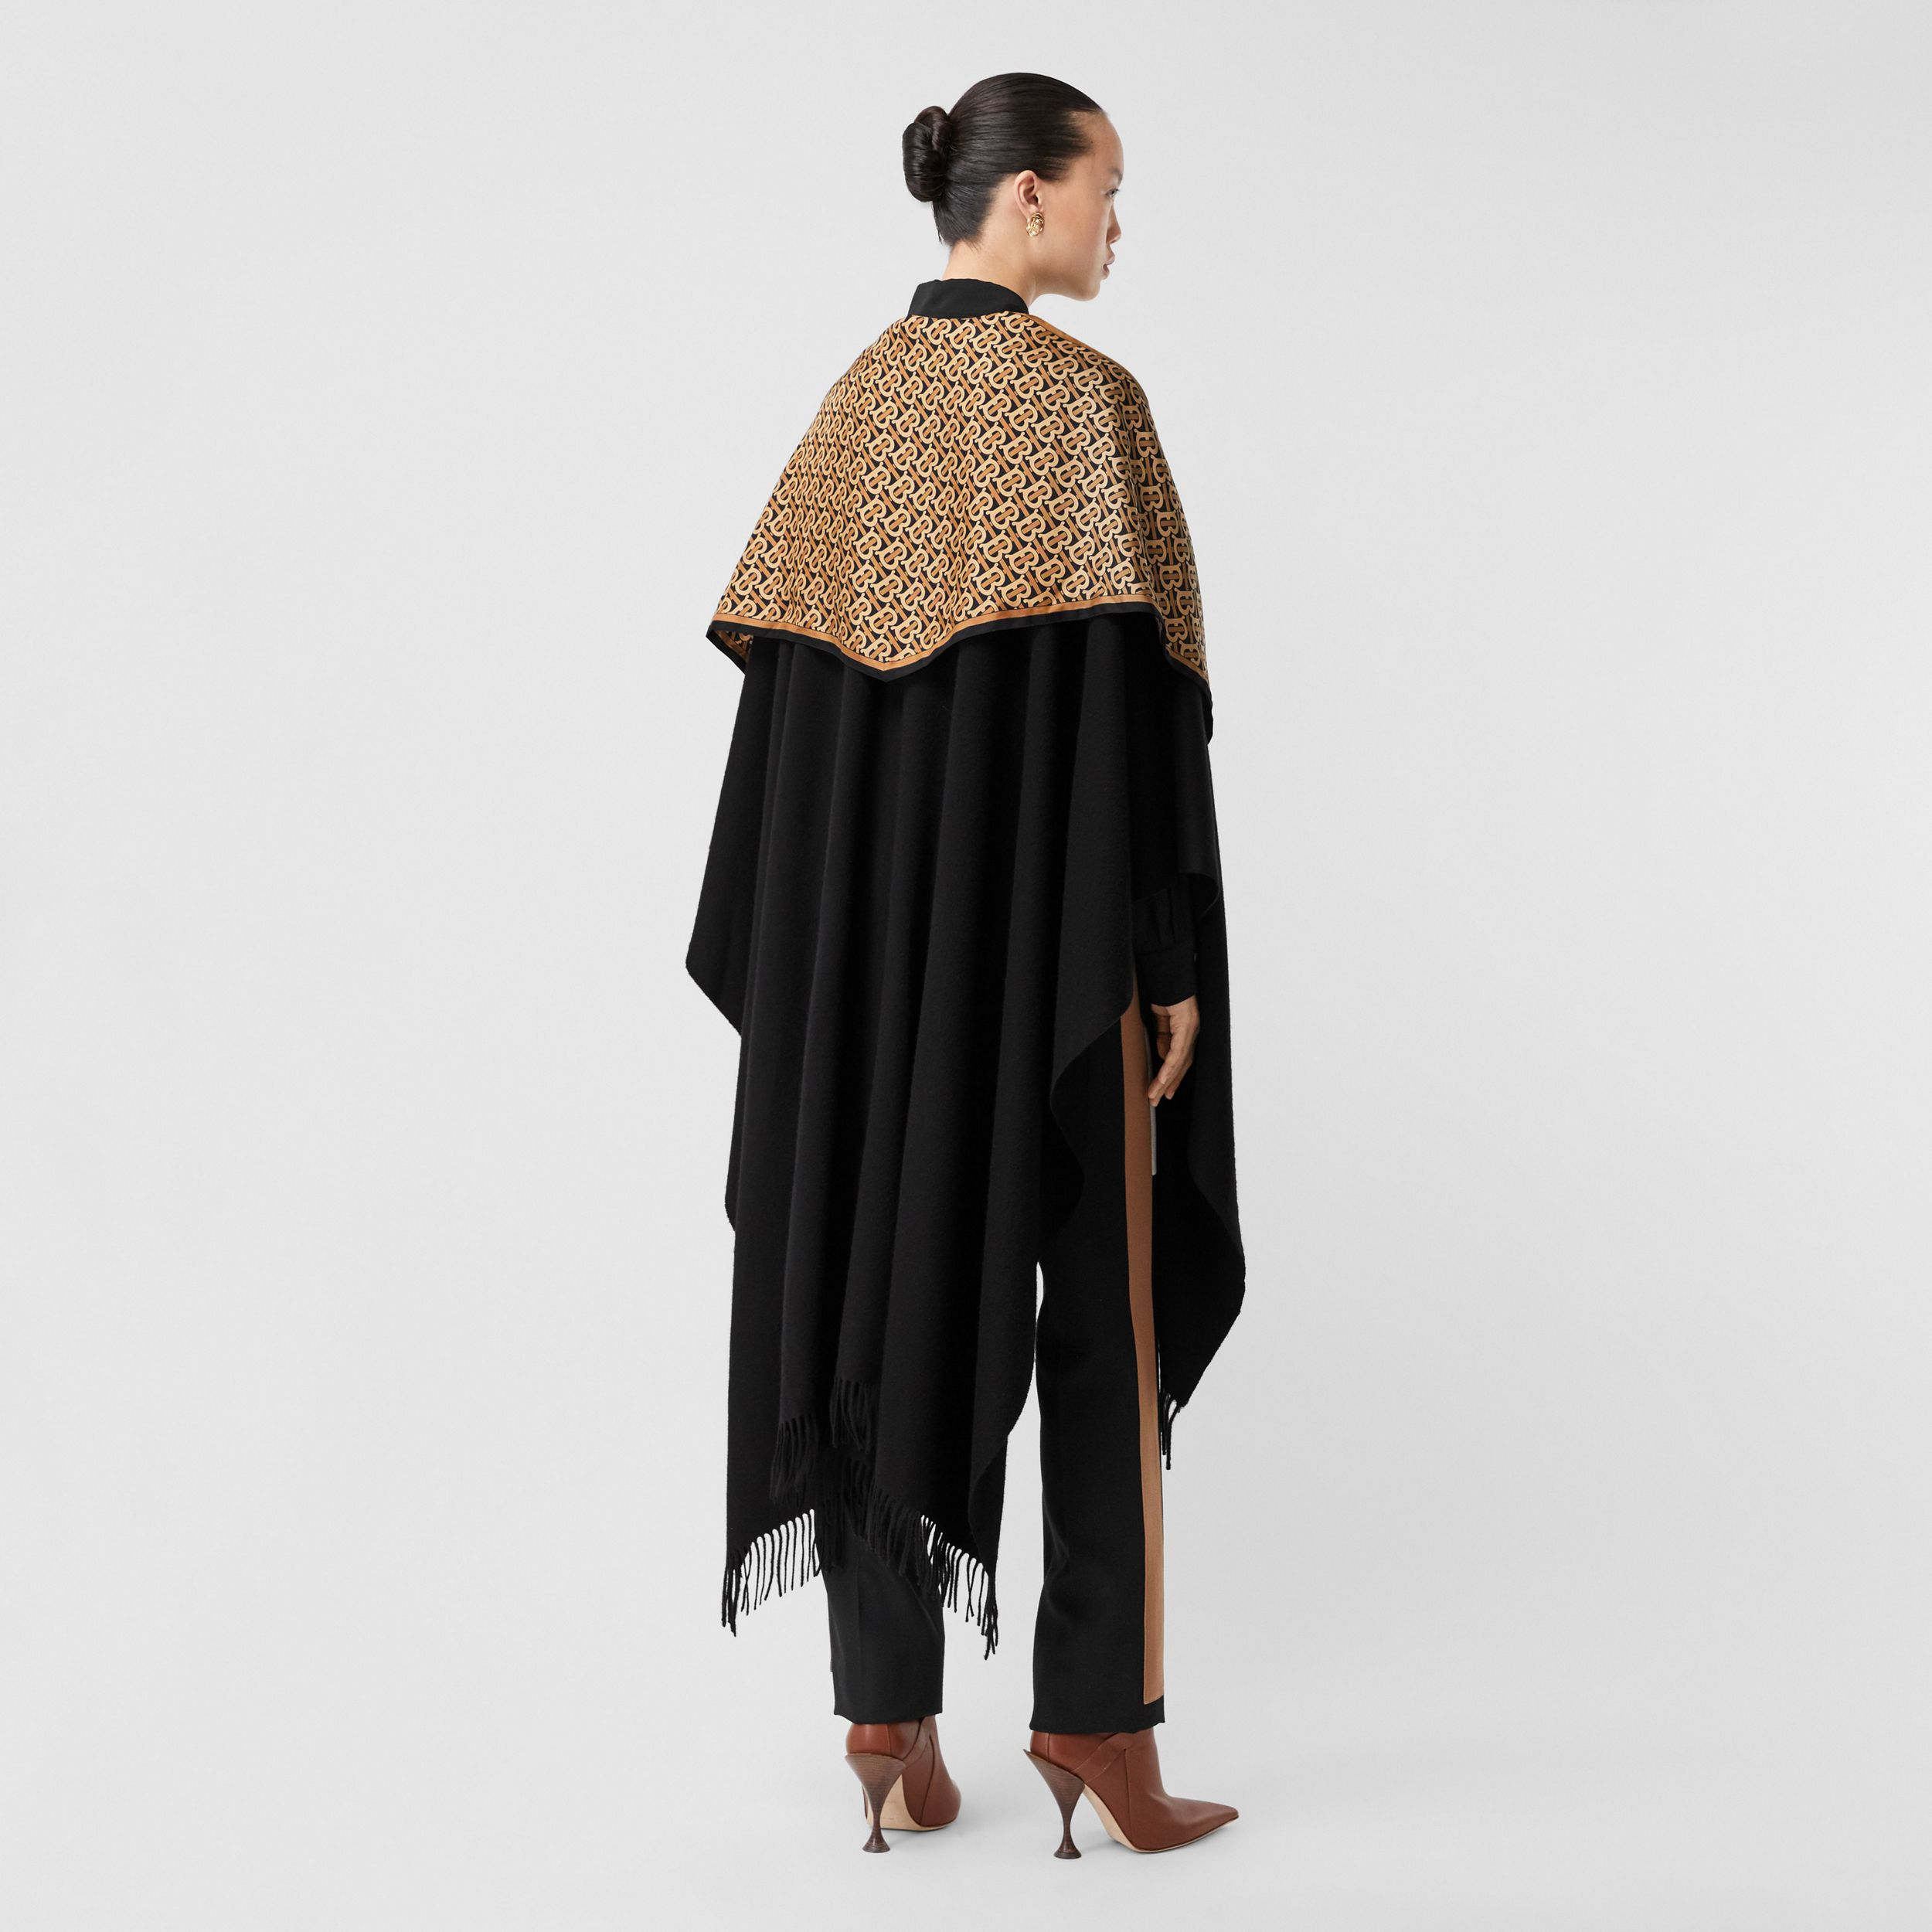 Detachable Monogram Print Scarf Cashmere Cape in Black - Women | Burberry - 3